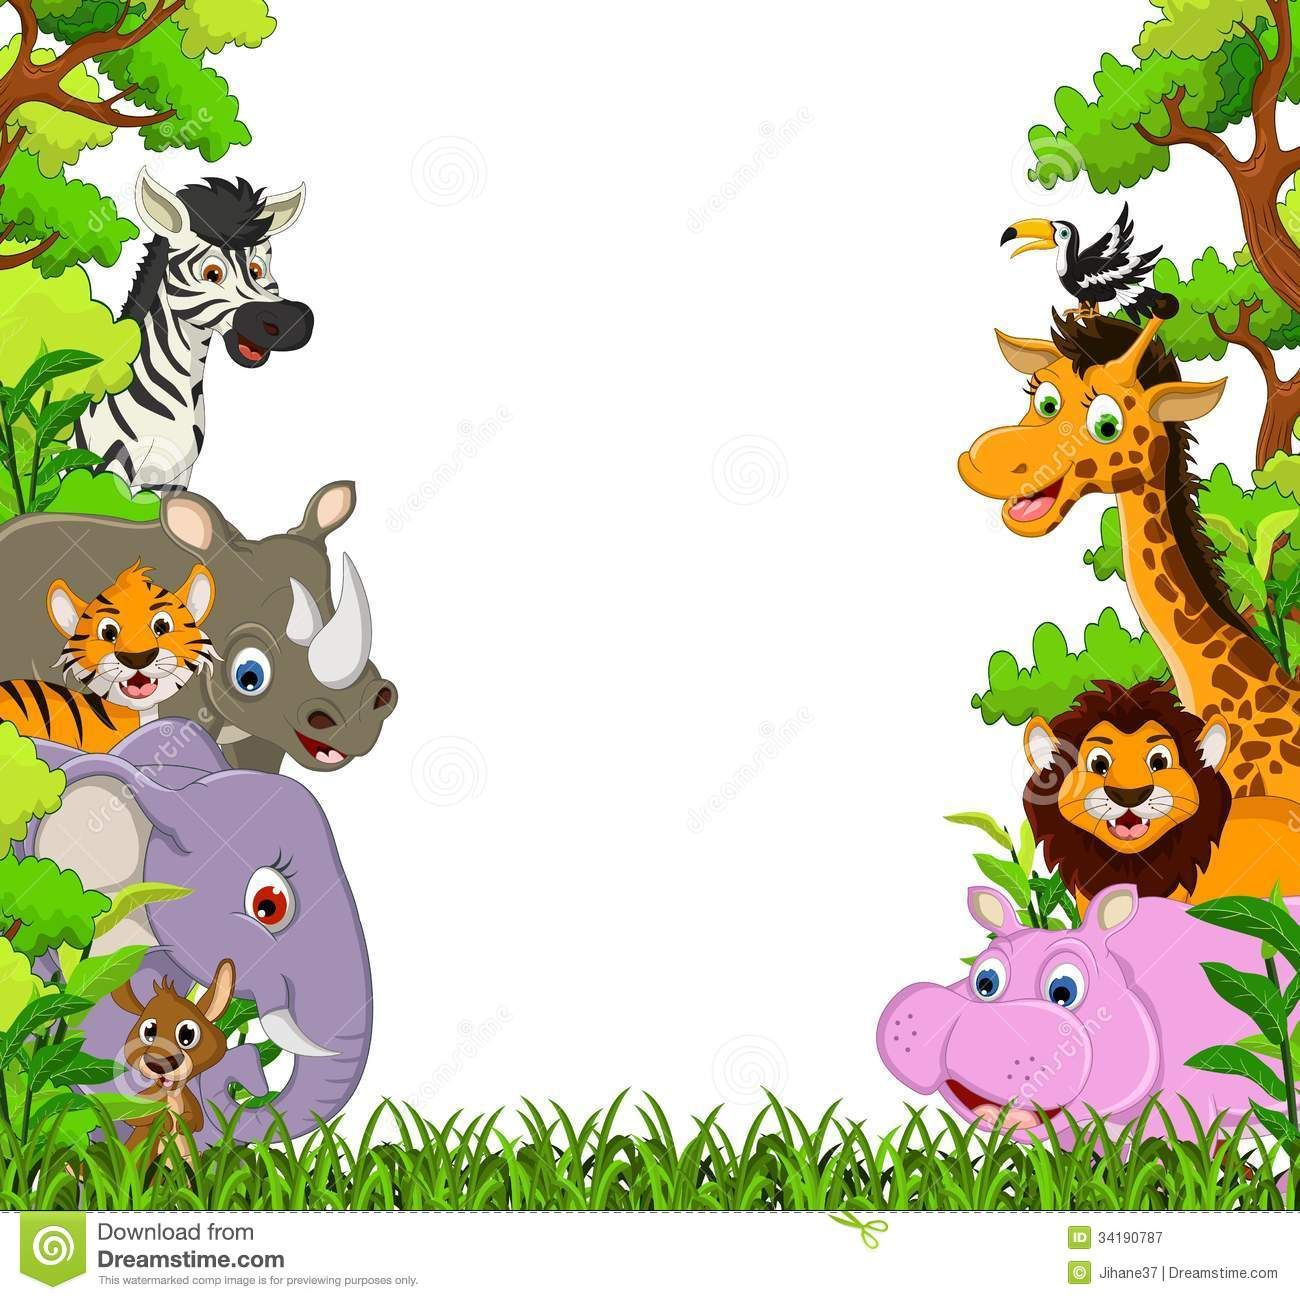 image for free jungle animal clipart cartoon images cute animal rh pinterest com jungle clip art images jungle clip art free downloads